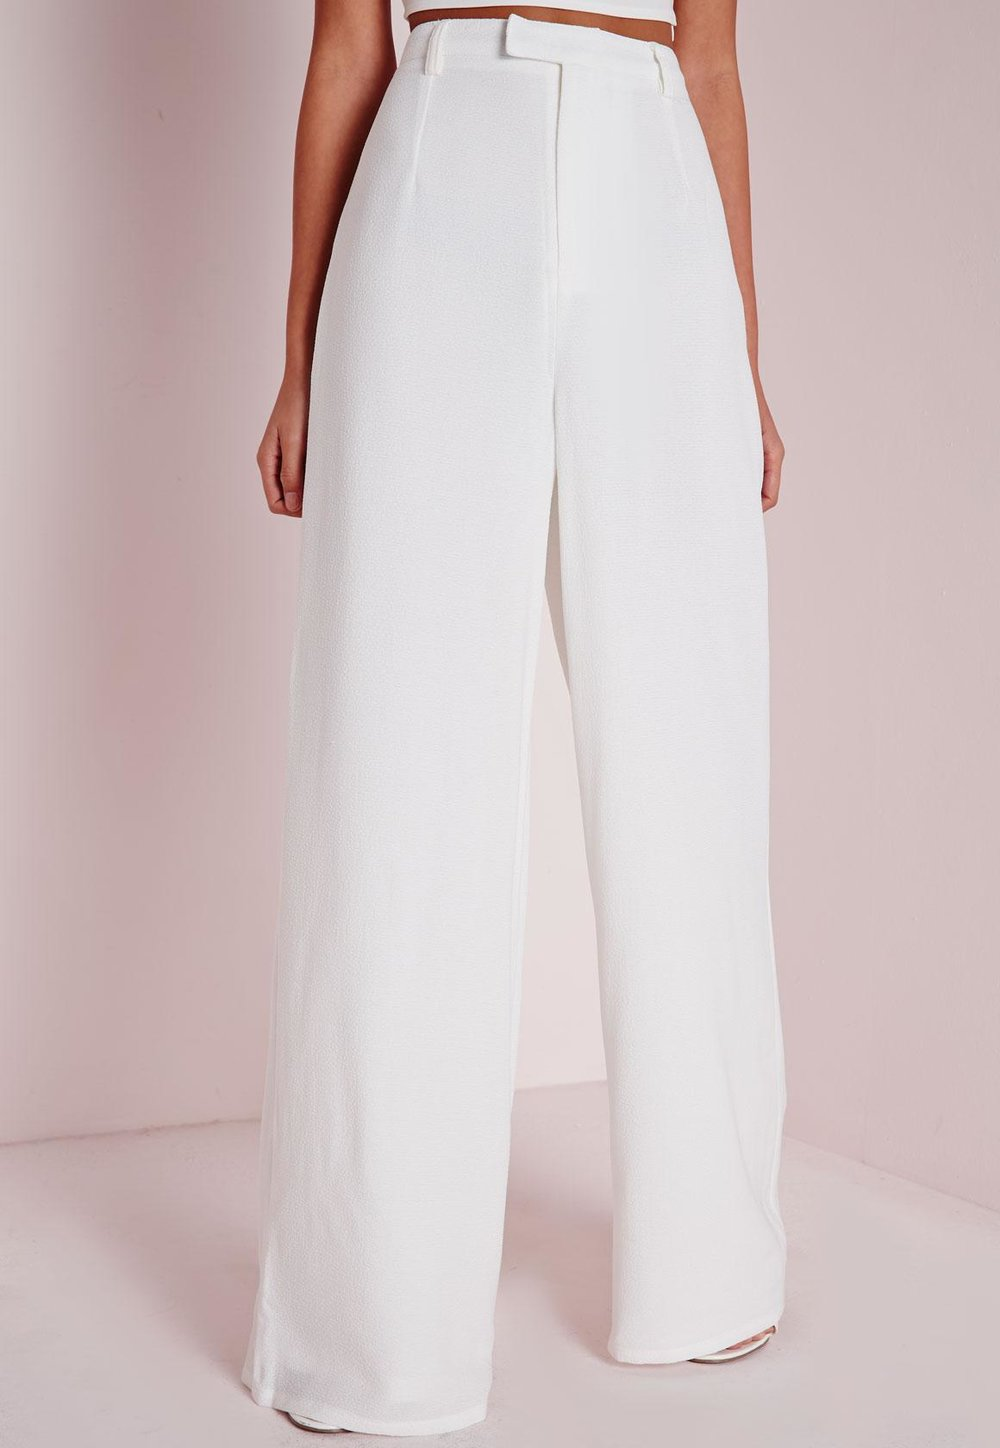 premium-crepe-wide-leg-pants-white.jpg